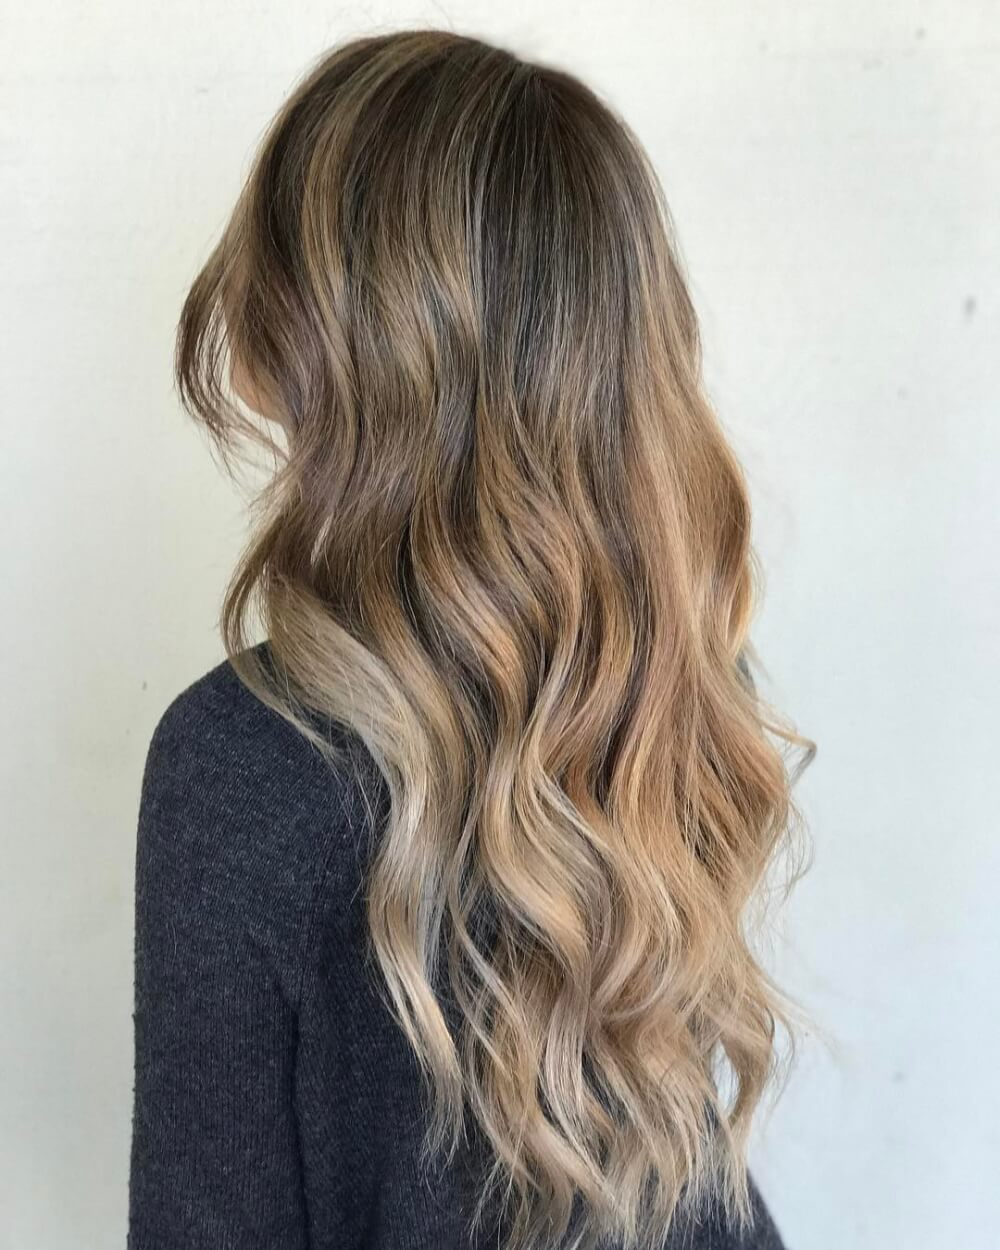 Soft Babylights hairstyle